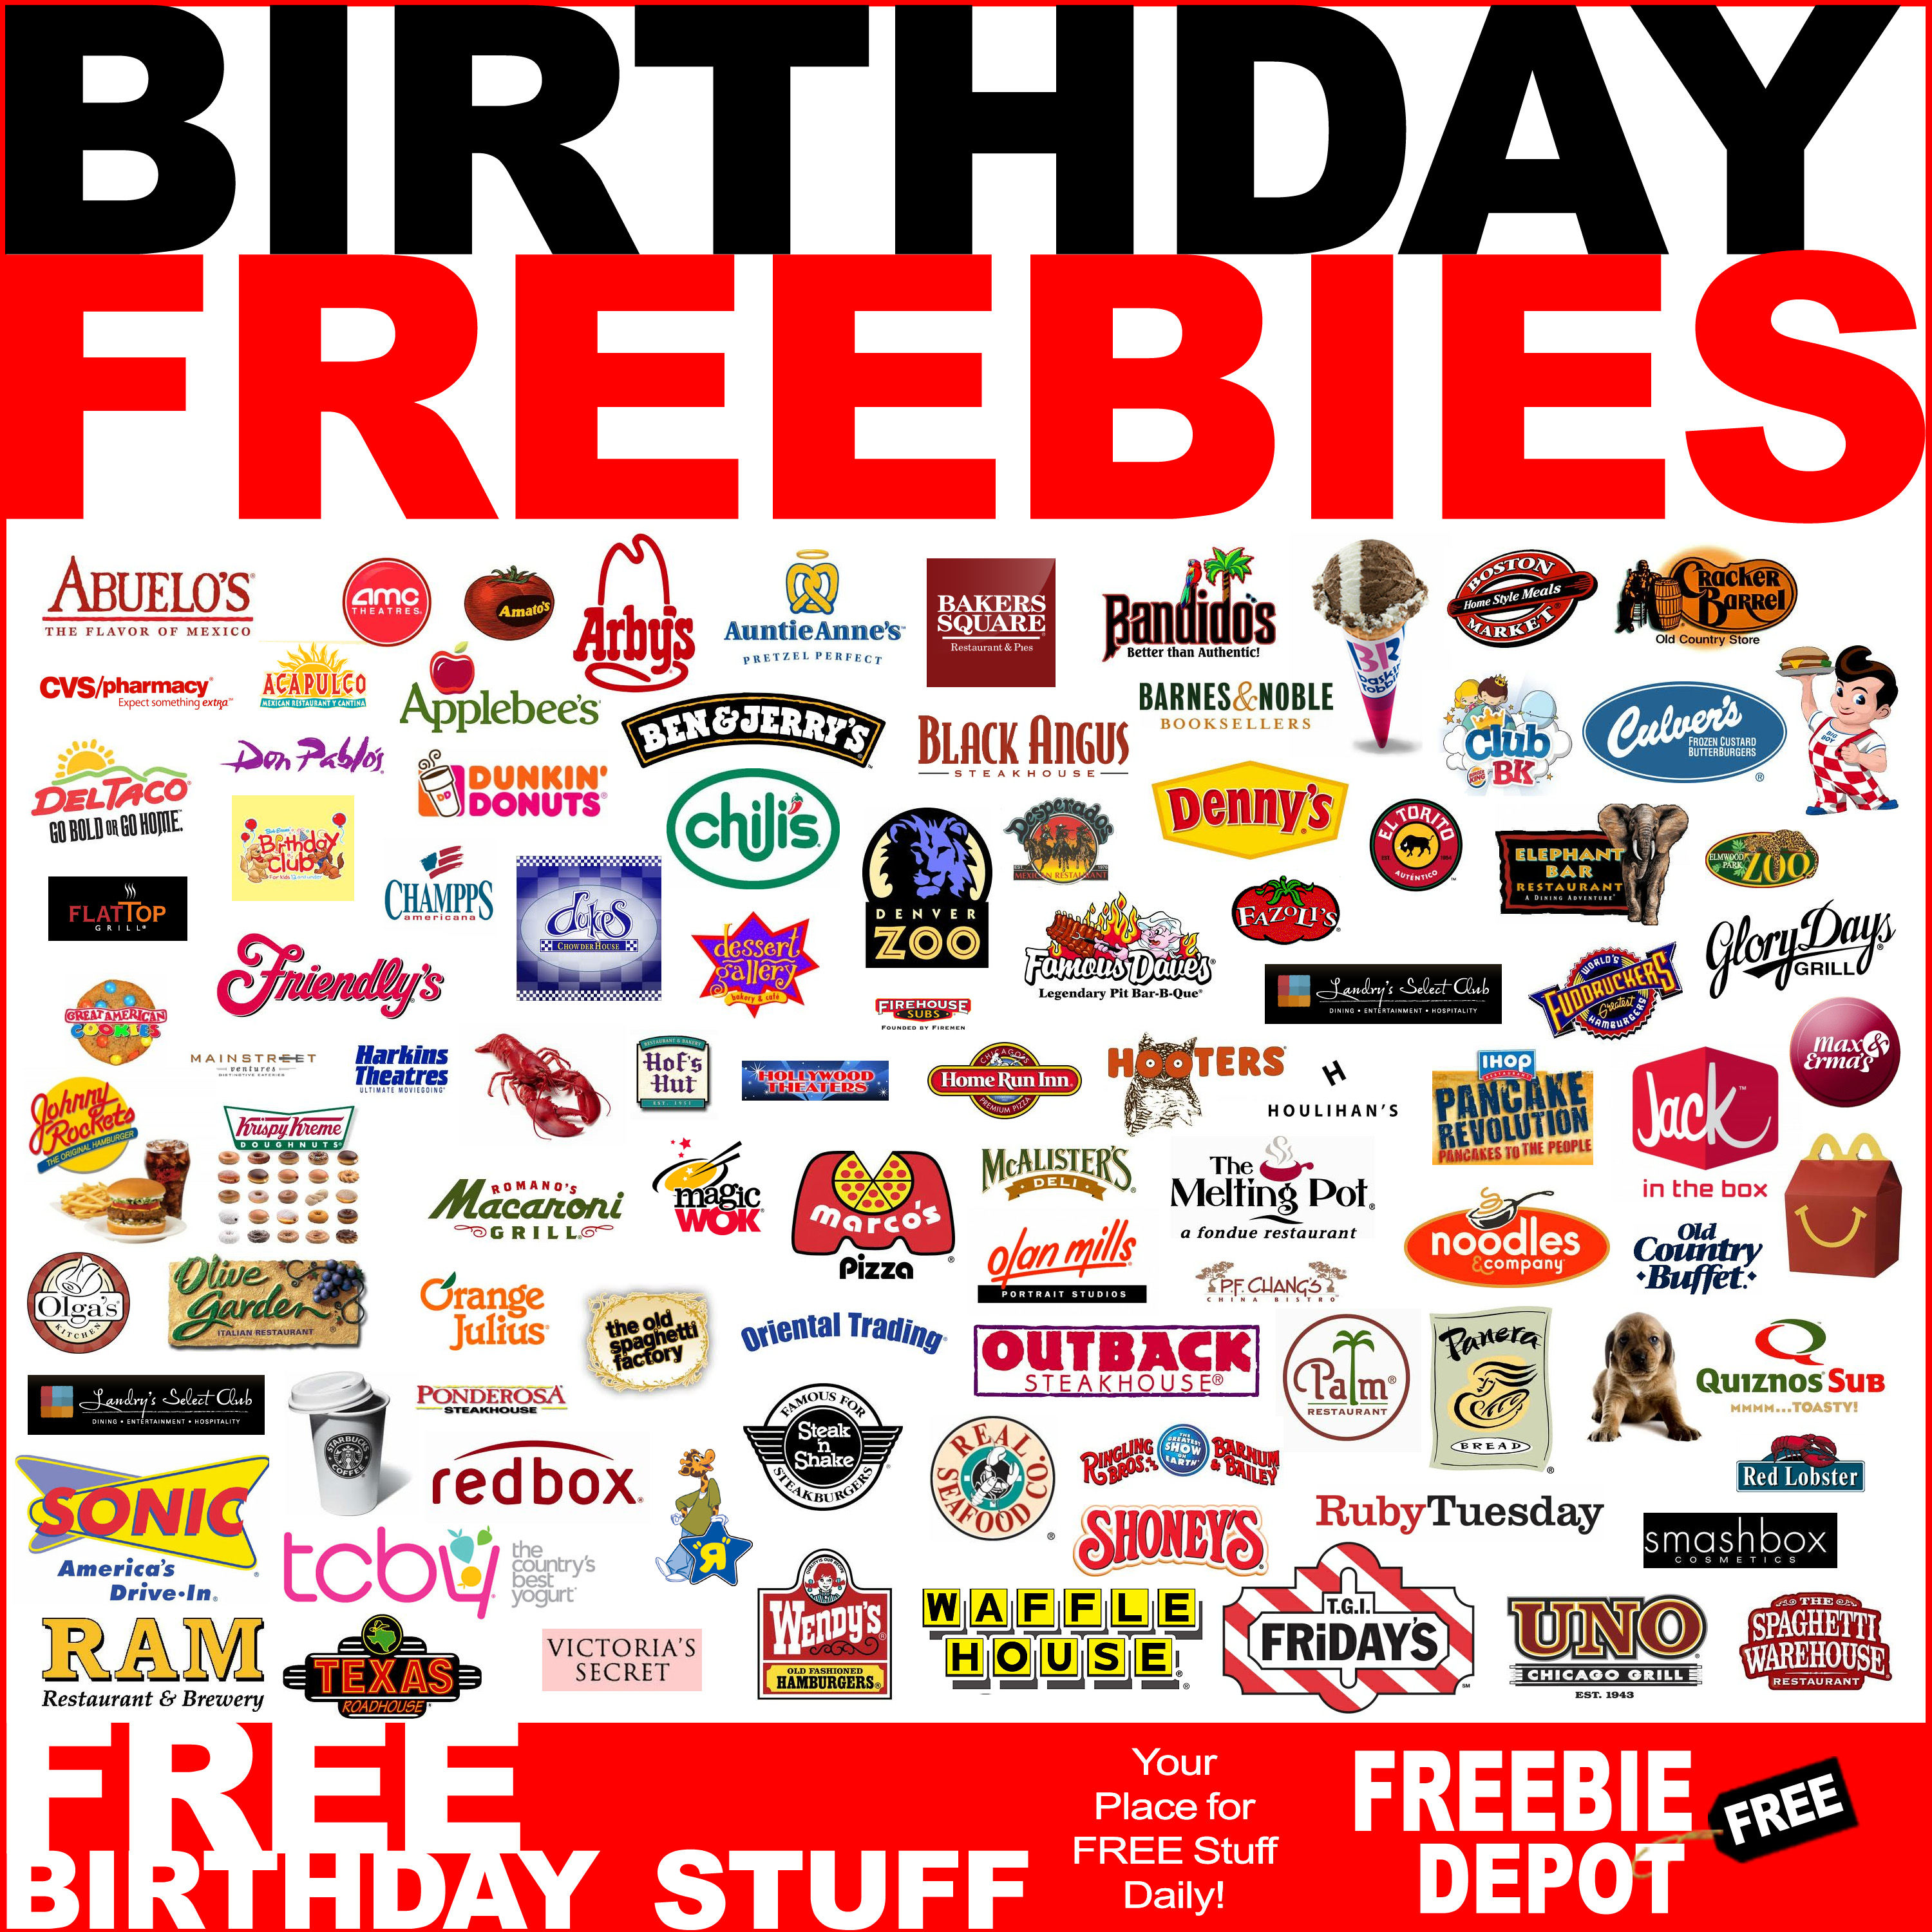 sign up for free birthday stuff ; Free-Birthday